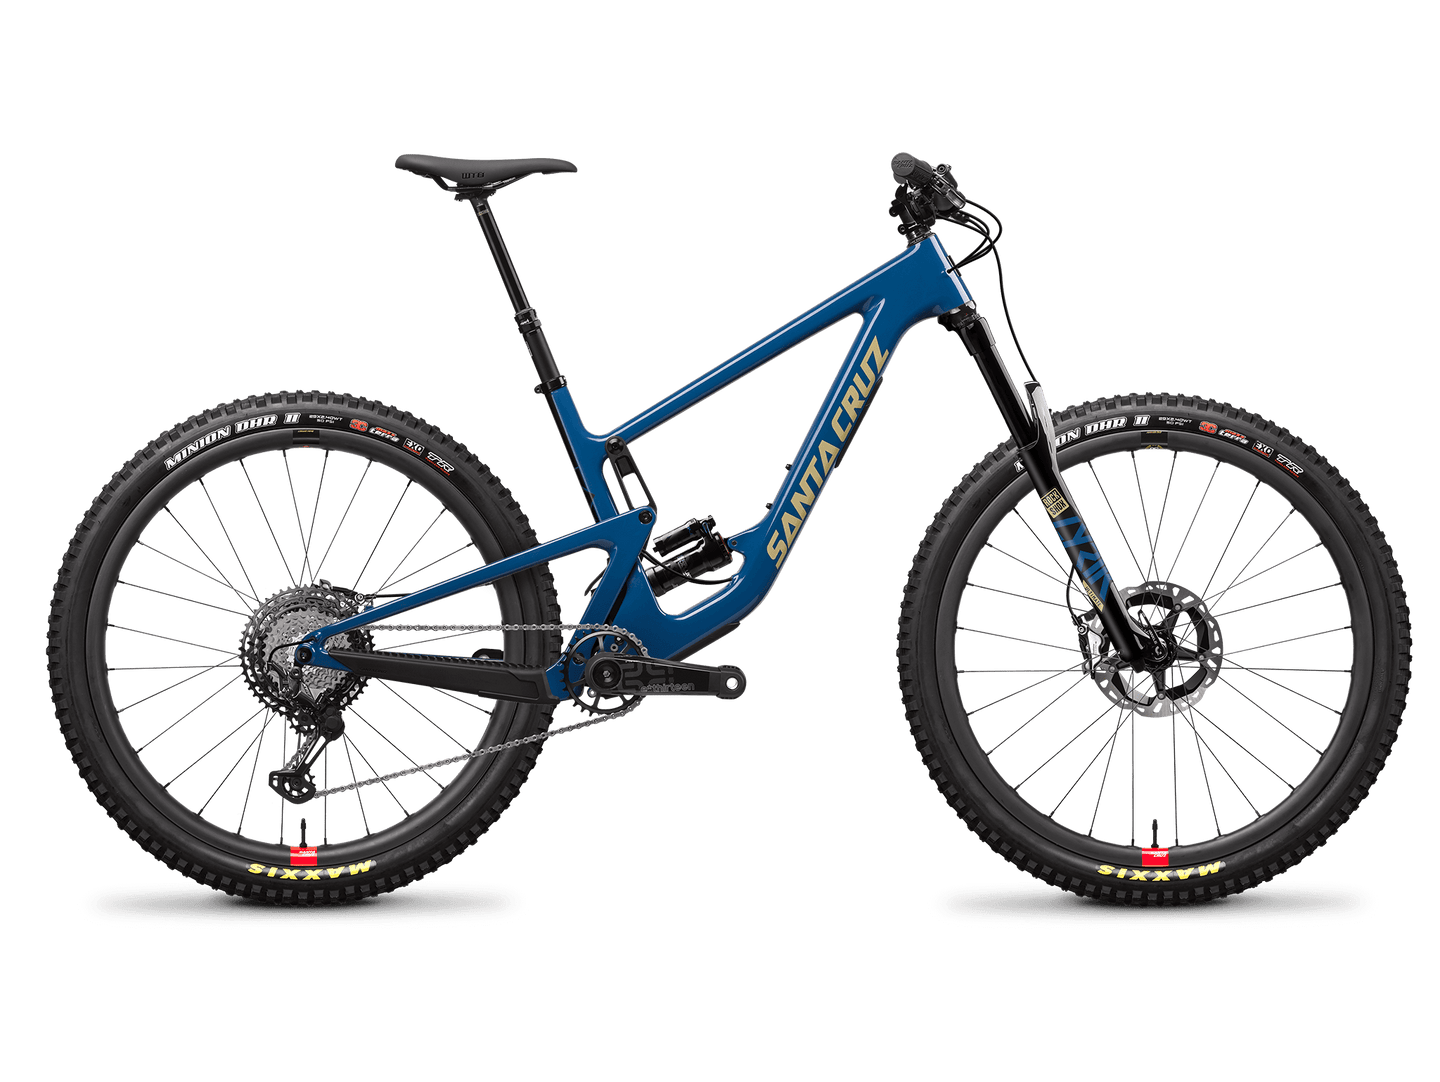 Santa Cruz Hightower Carbon CC - XTR Reserve Kit